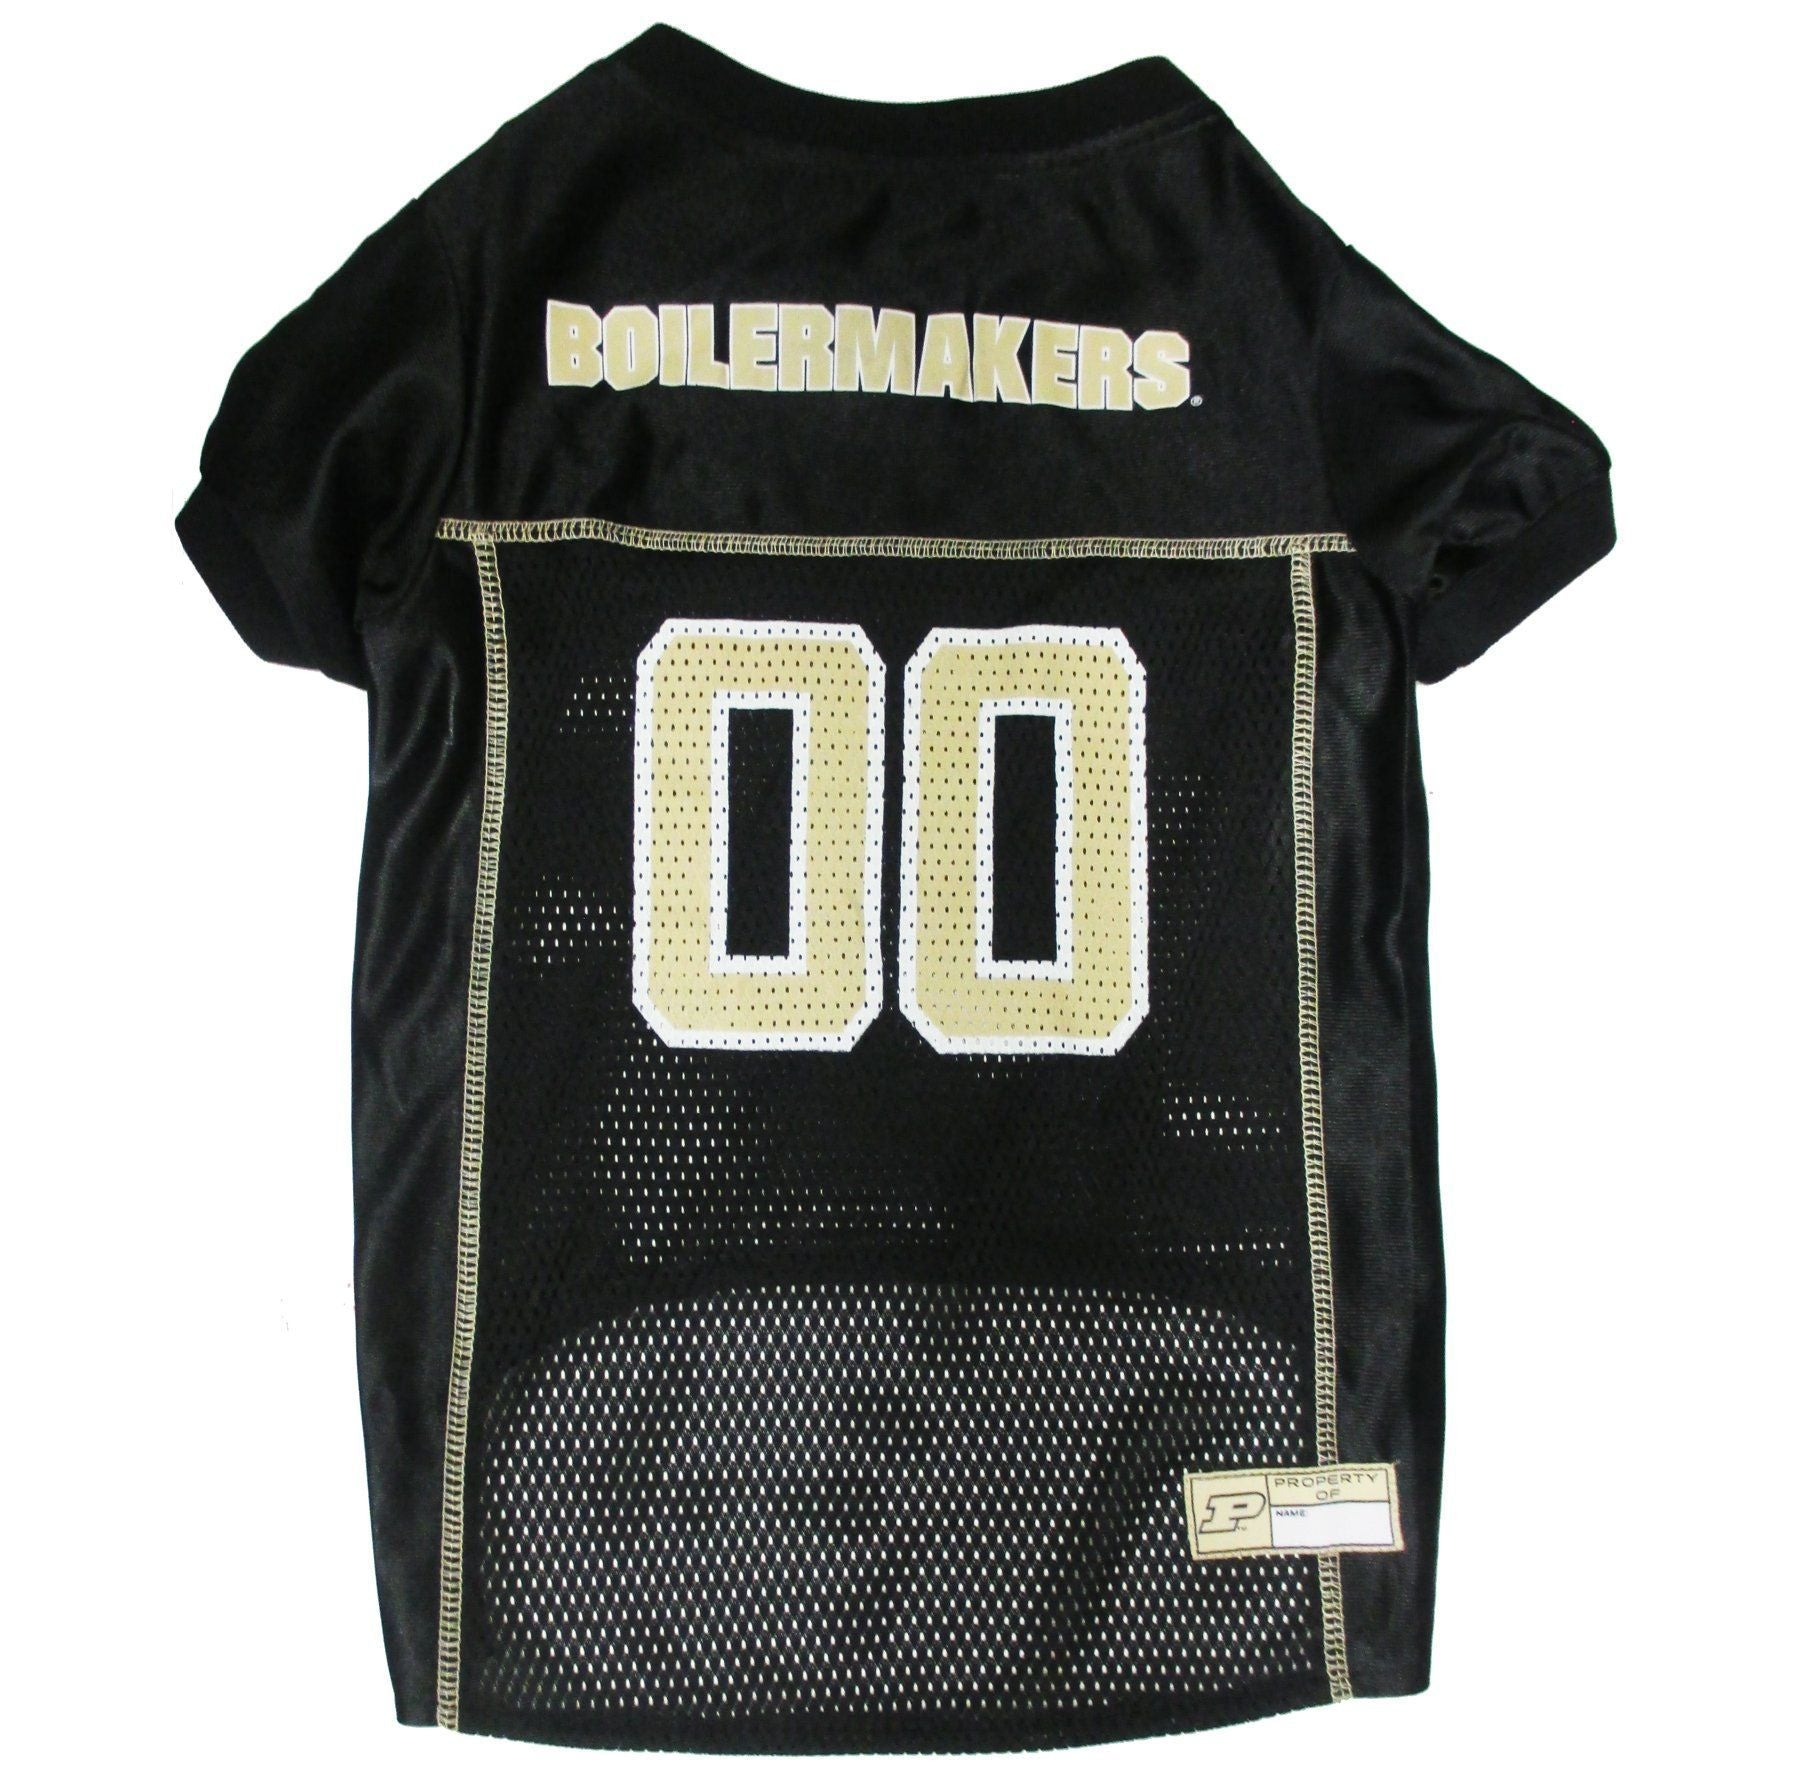 Purdue Boilermakers Football Puppy Dog Jersey - Jersey Champs - Custom Basketball, Baseball, Football & Hockey Jerseys